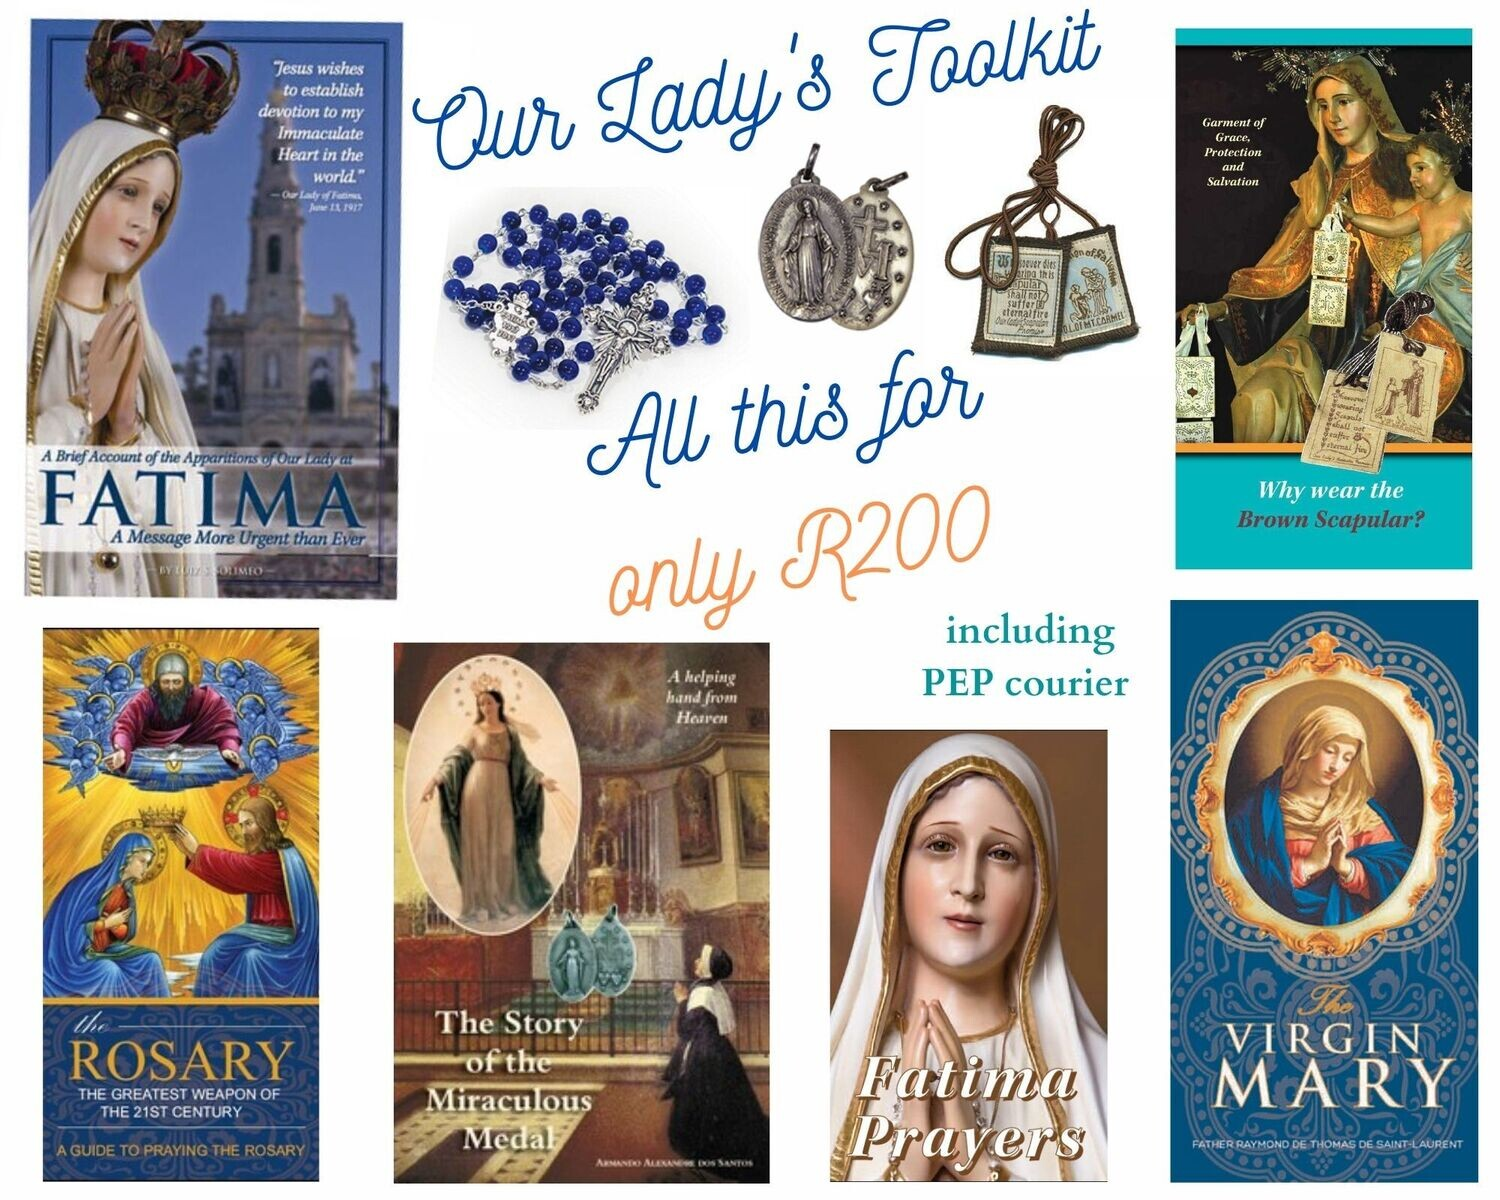 Our Lady's Toolkit (AUGUST SPECIAL OFFER)